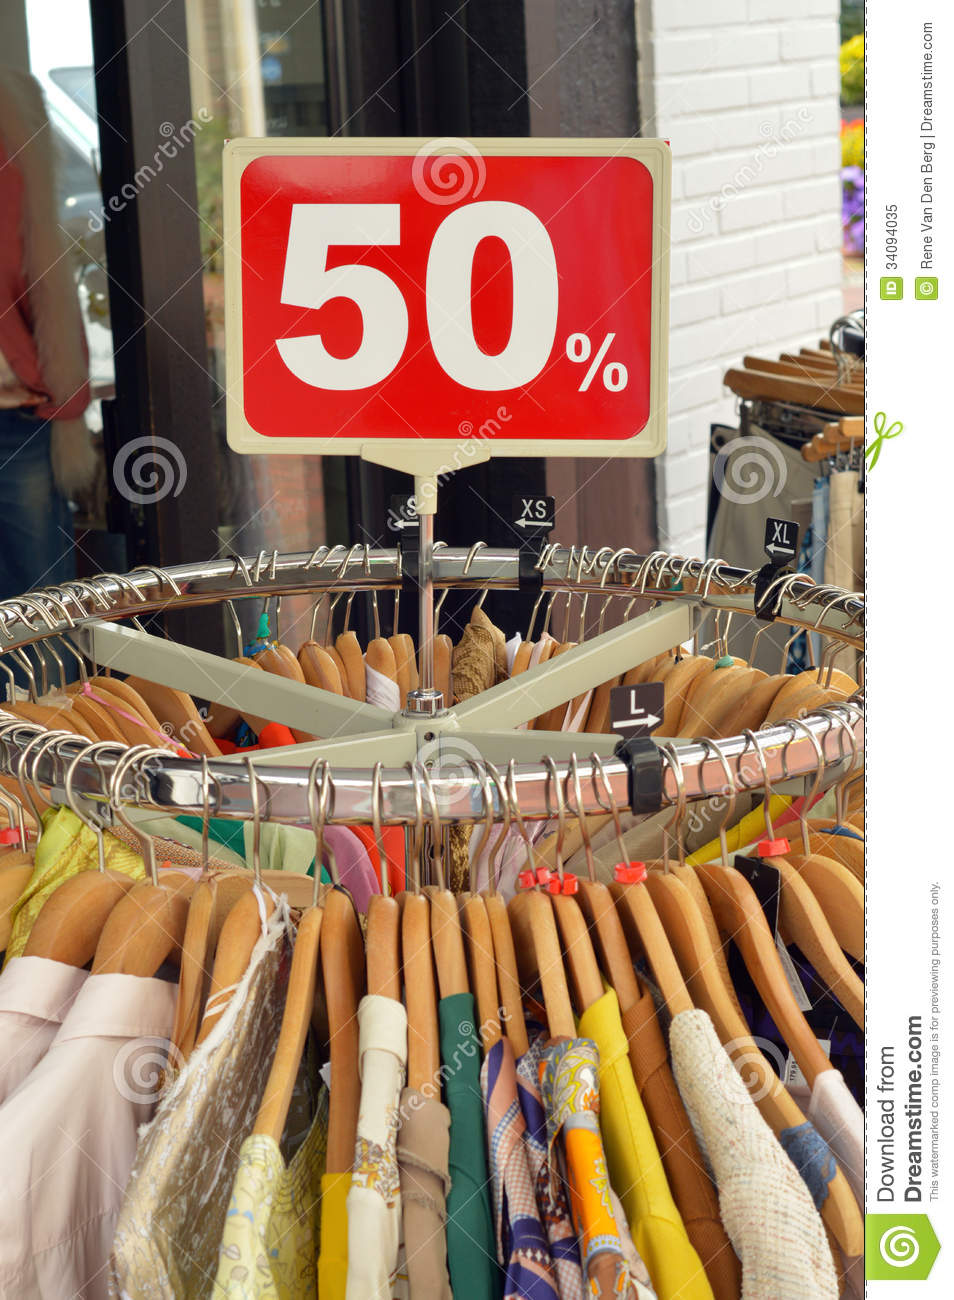 Check out our stores that offer Clothing coupons and deals. The most recent Clothing offer is '15% Off Express Coupon Code' from Express. If you're looking for Clothing coupons, then you've come to the right place. Below, you'll find a list of popular stores that sell all things related to Clothing.